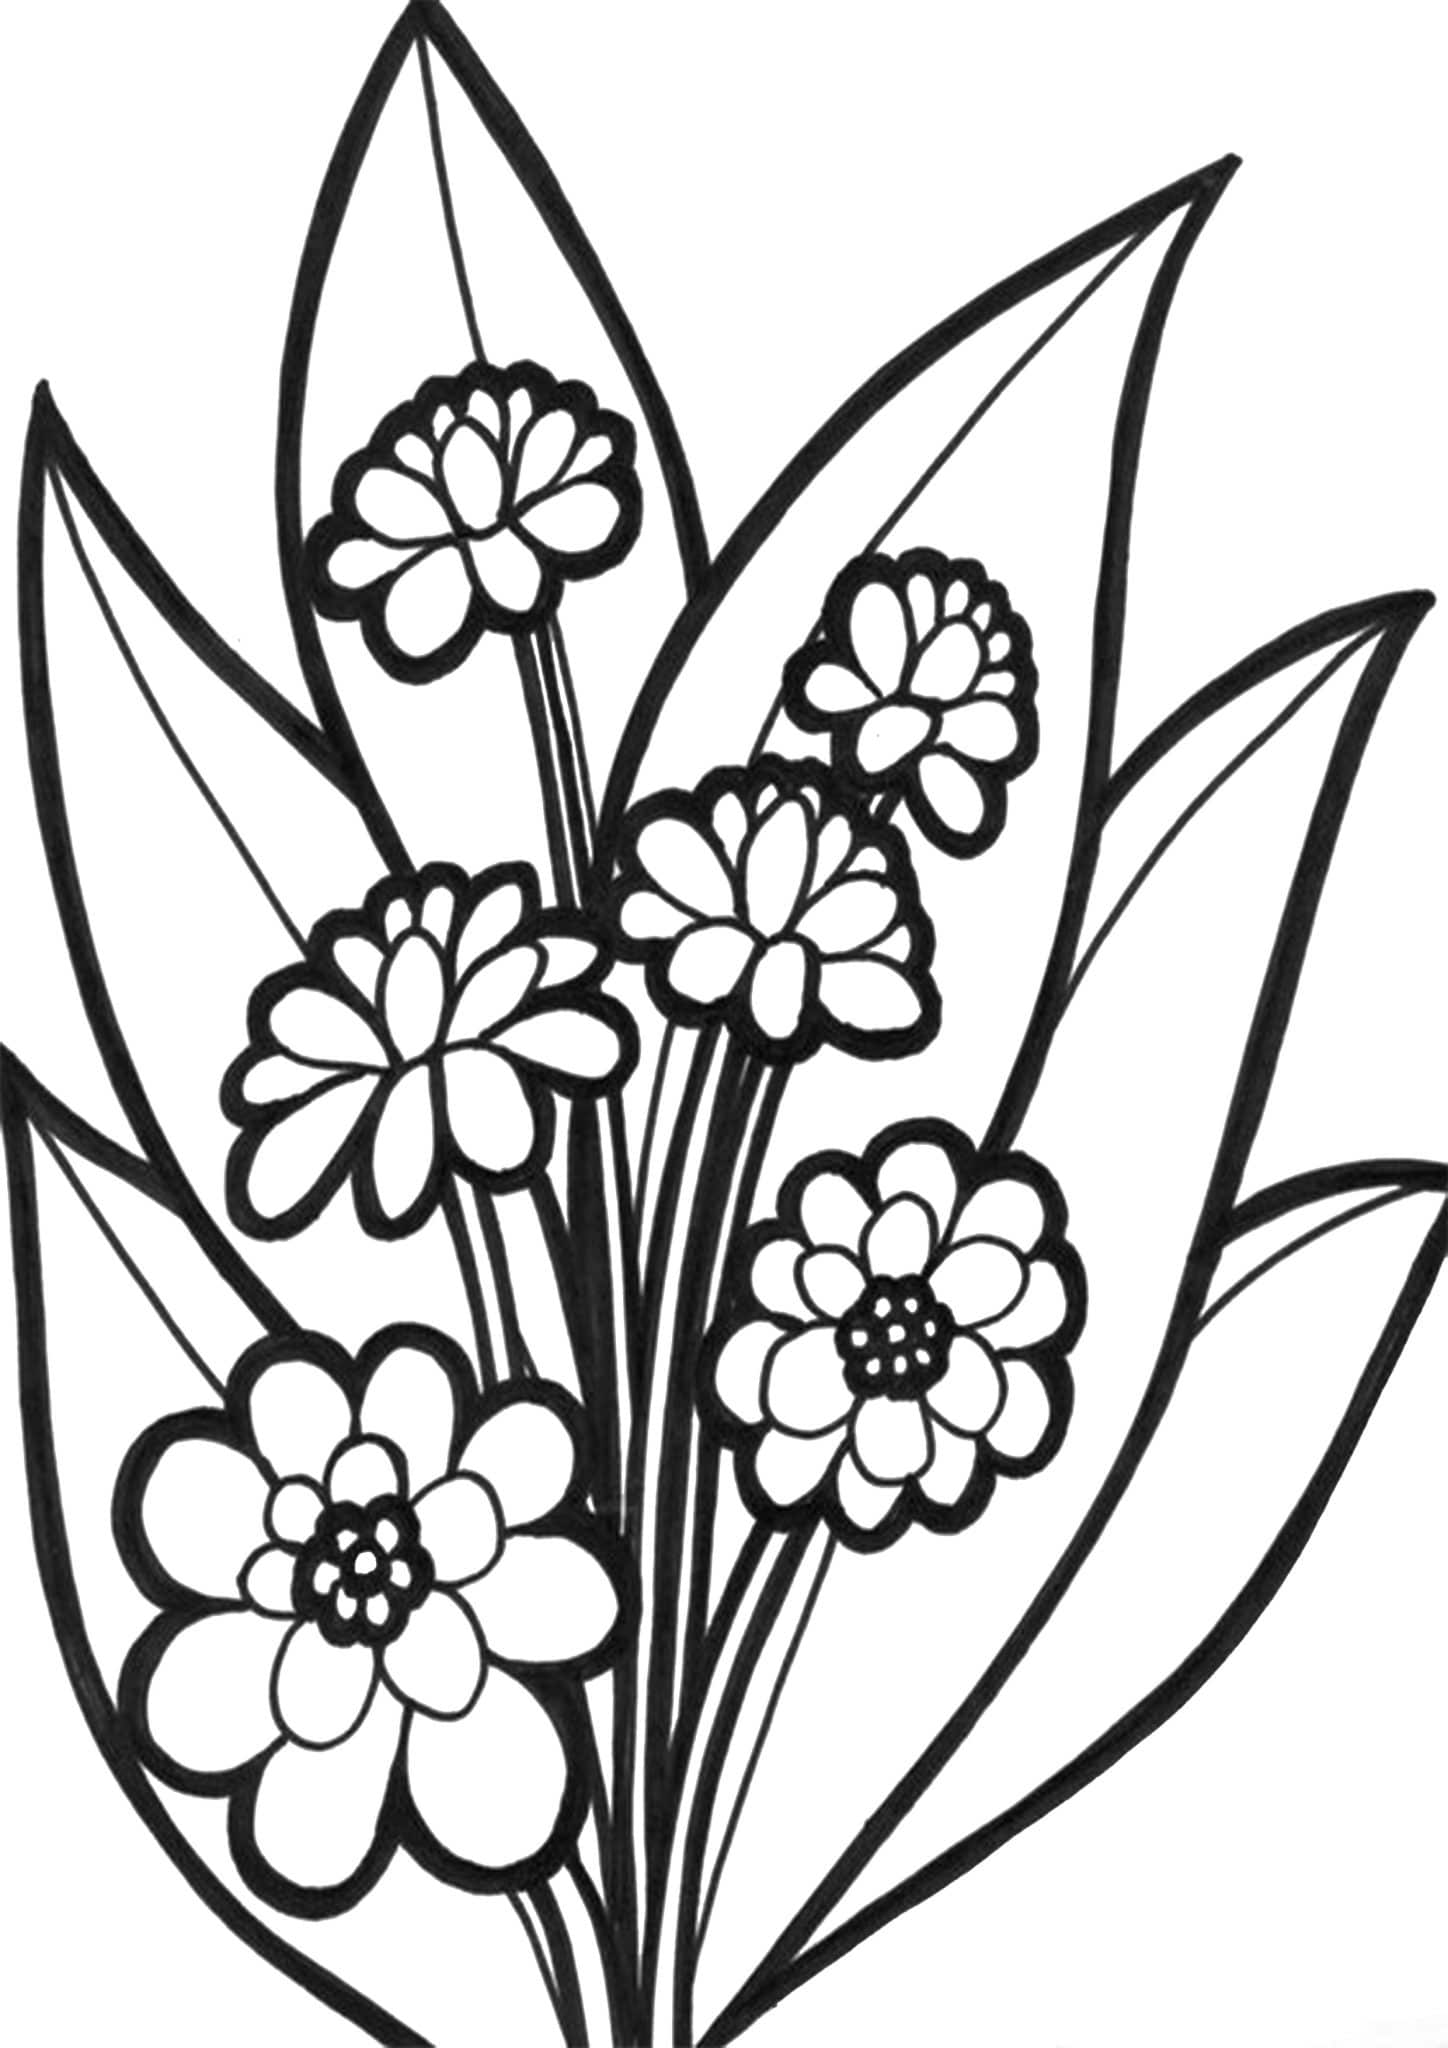 printable simple flower coloring pages free easy to print flower coloring pages tulamama simple printable flower coloring pages